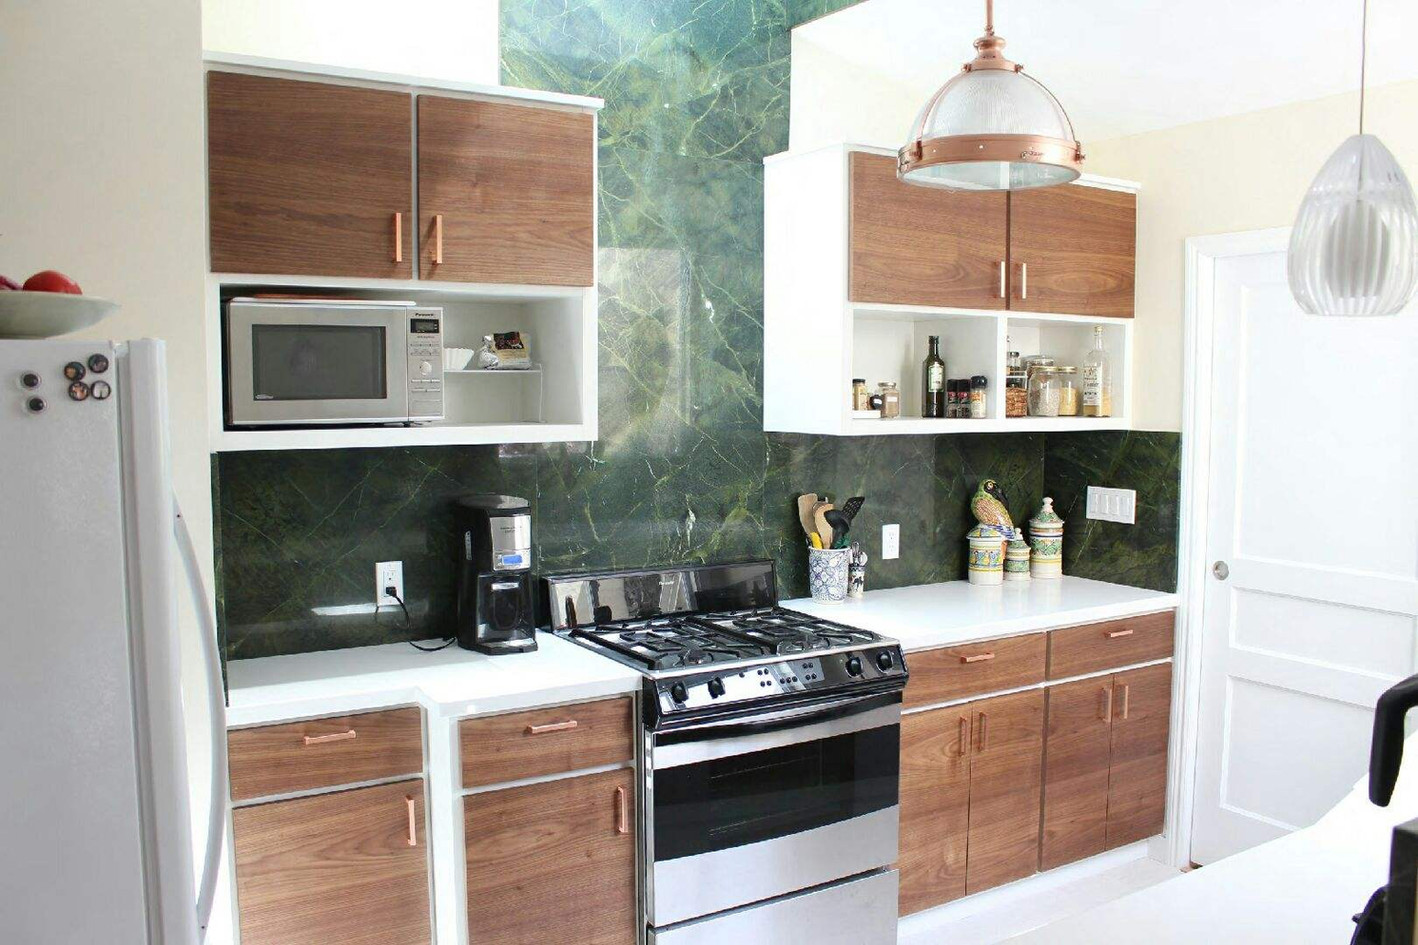 Marble and wood kitchen